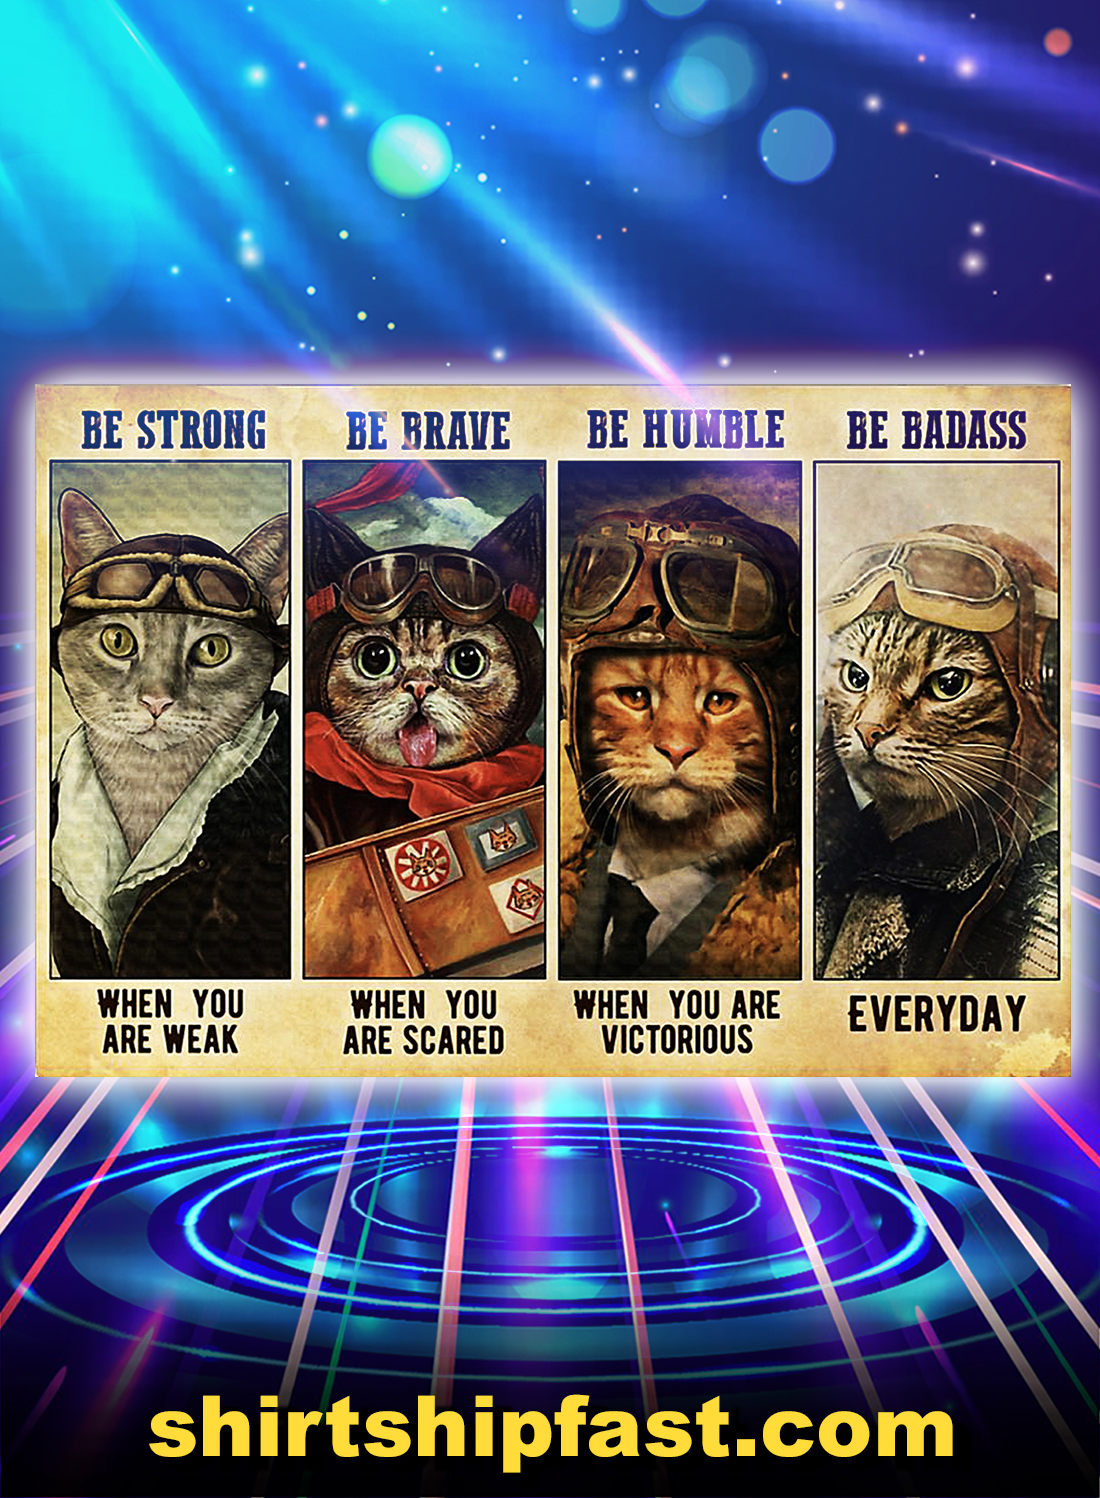 Be strong be brave be humble be badass cat pilot poster - A4